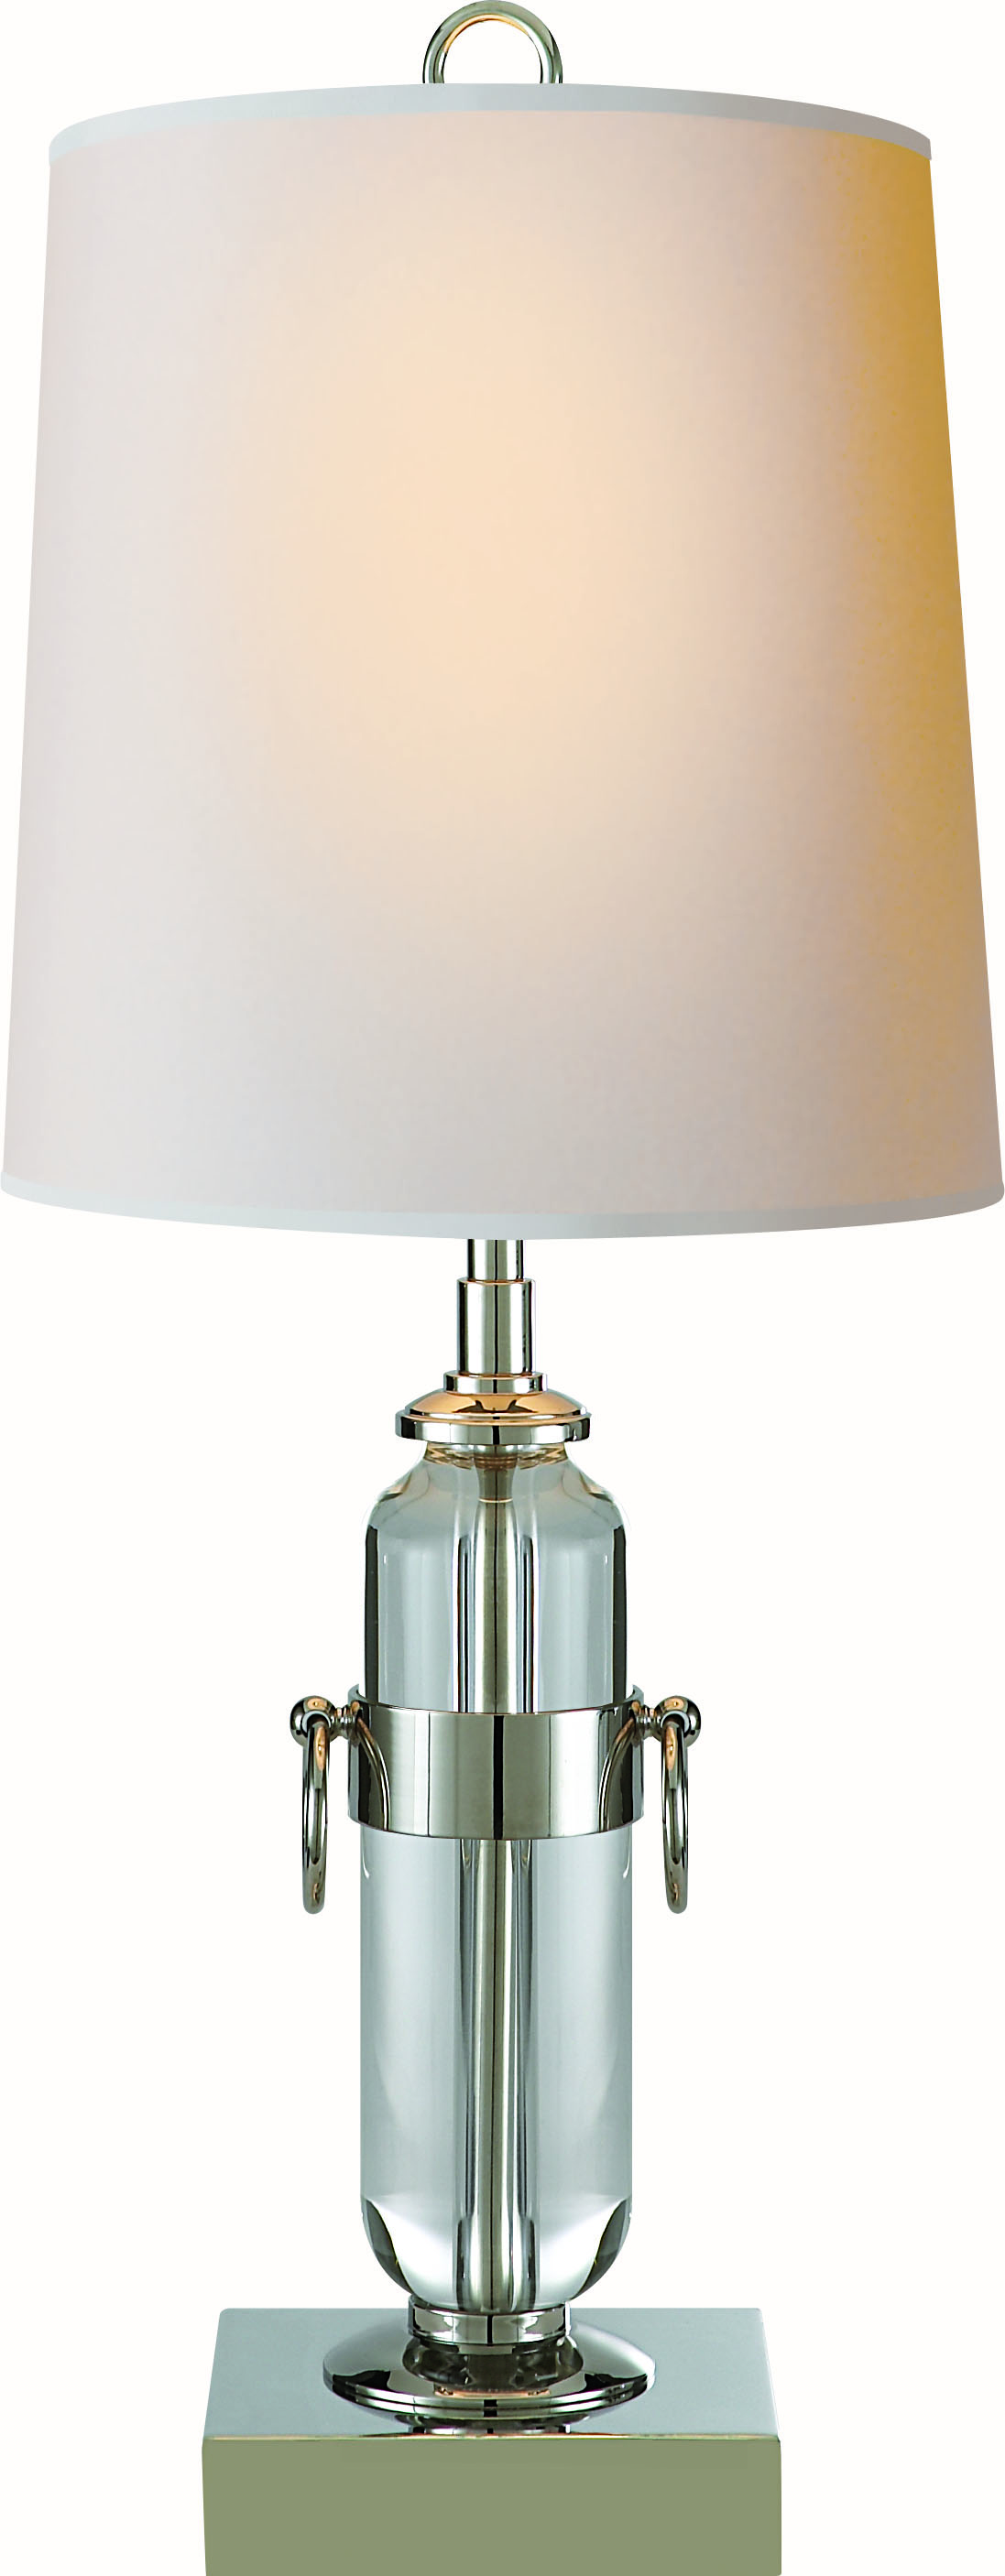 Chic visual comfort lighting for your lighting design with visual comfort lamps